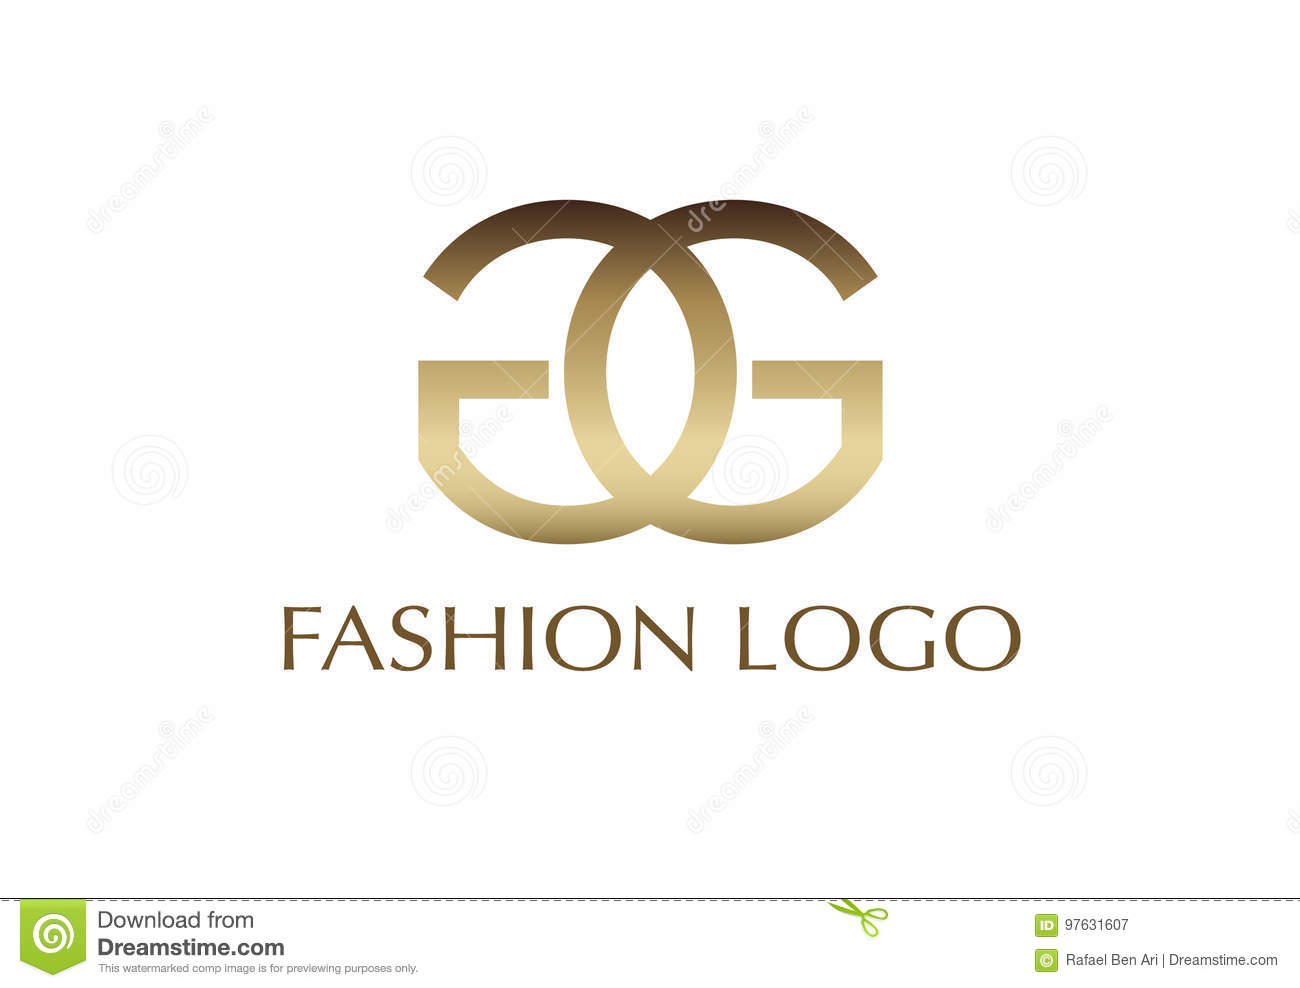 Vector Illustration Gold Fashion Logo Design Stock Vector Illustration Of Identity Illustration 97631607